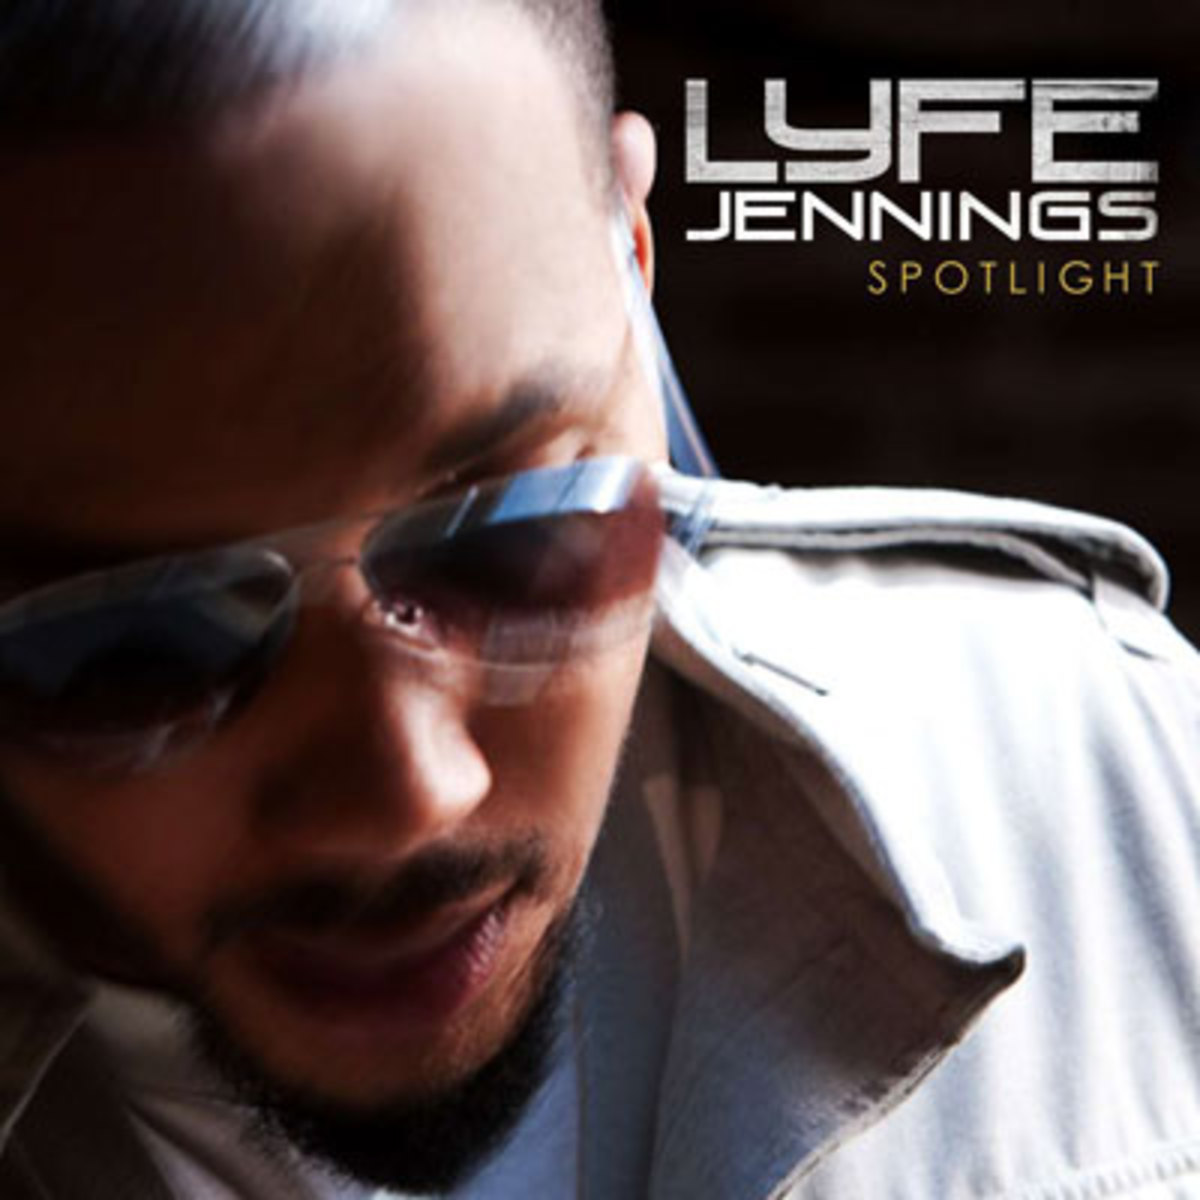 lyfejennings-spotlight.jpg